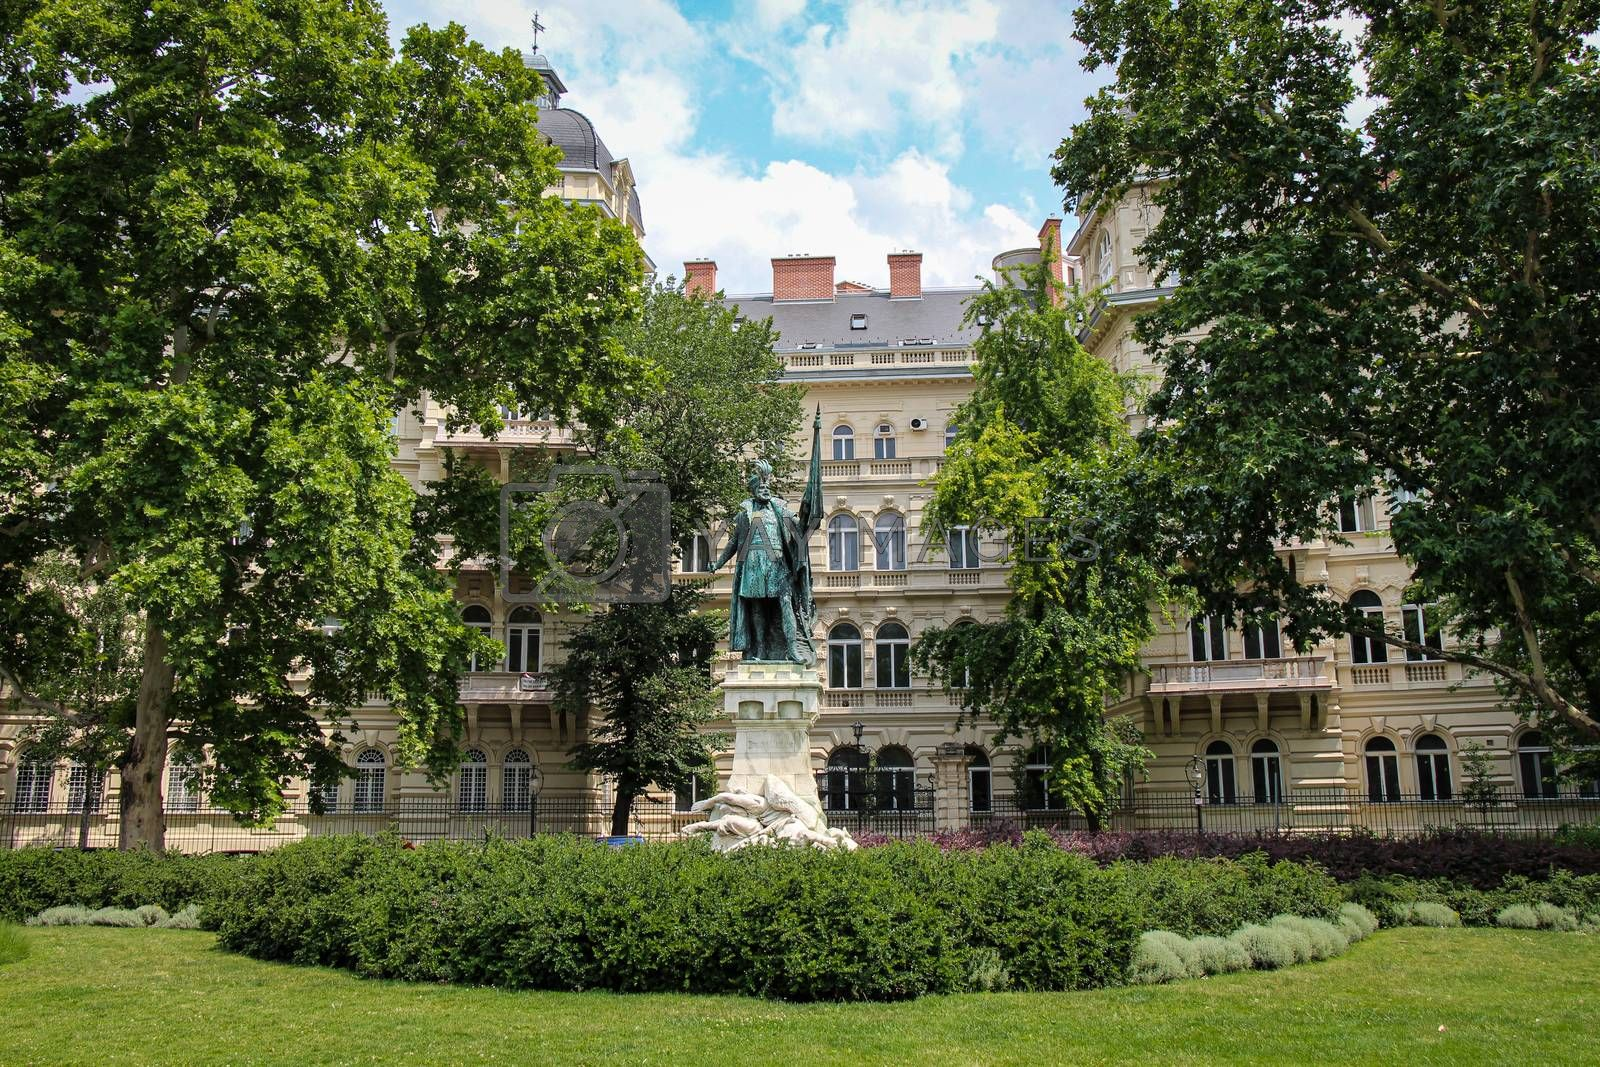 Budapest, Hungary - June 28th 2013: The statue of Zrínyi Miklós at Zoltán Kodály Memorial Museum, Budapest, Hungary